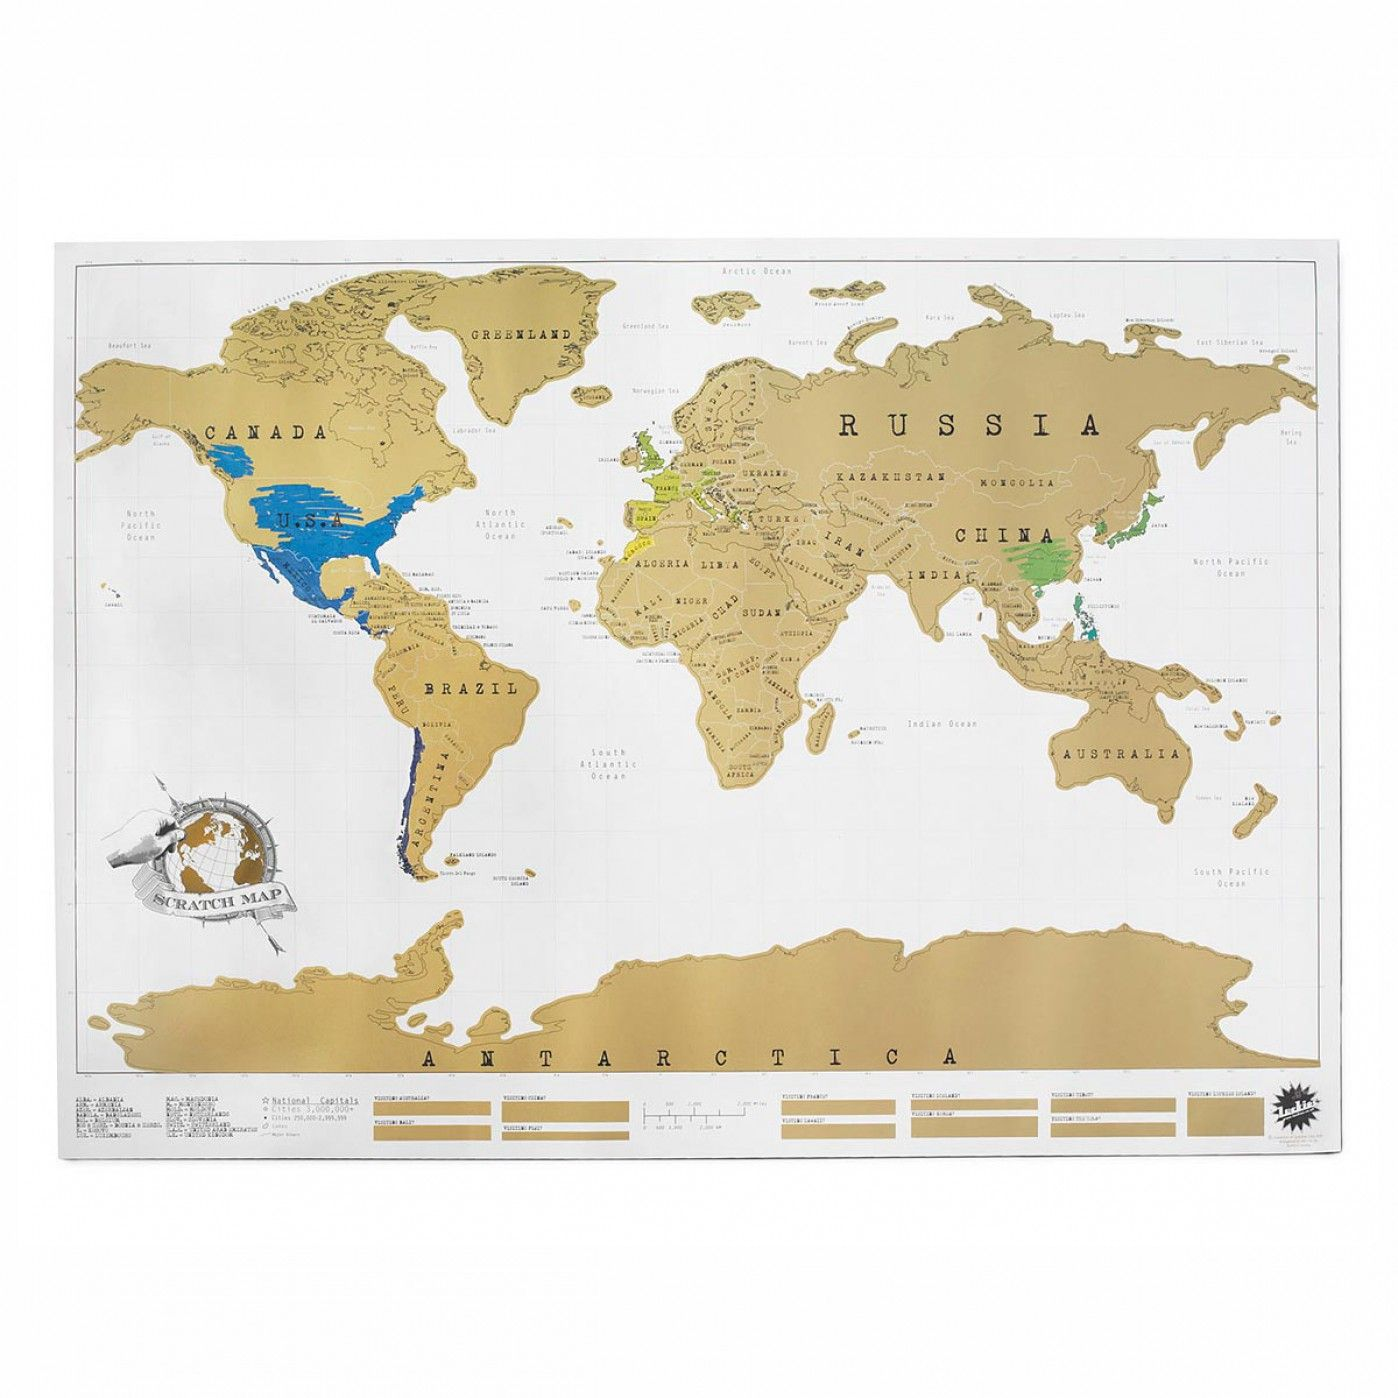 Carte du monde à gratter | Travel gifts